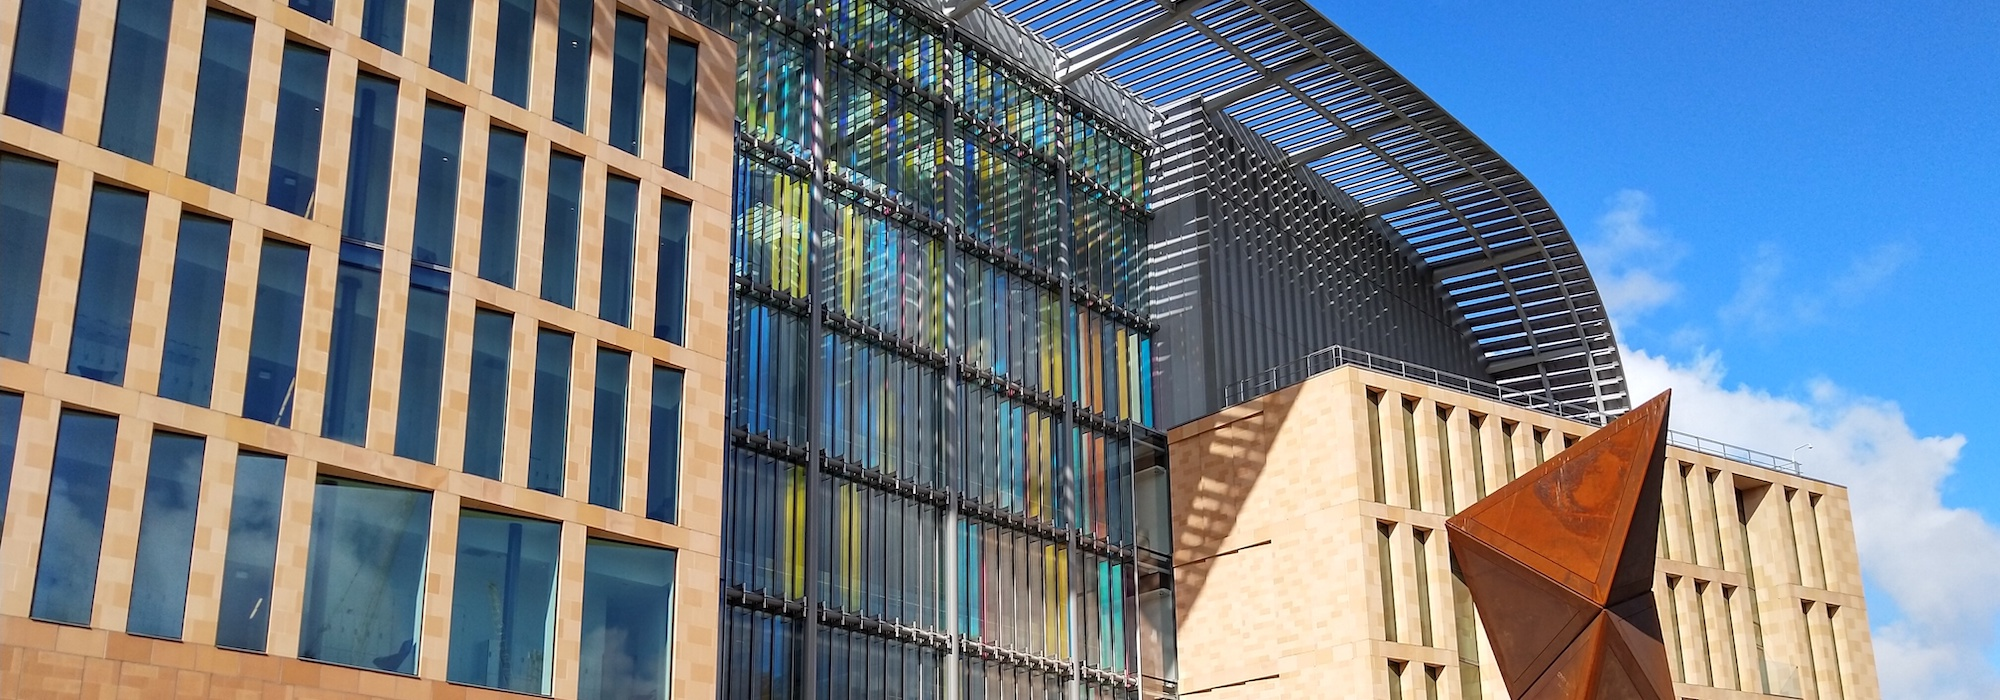 The facade of the Francis Crick Institute